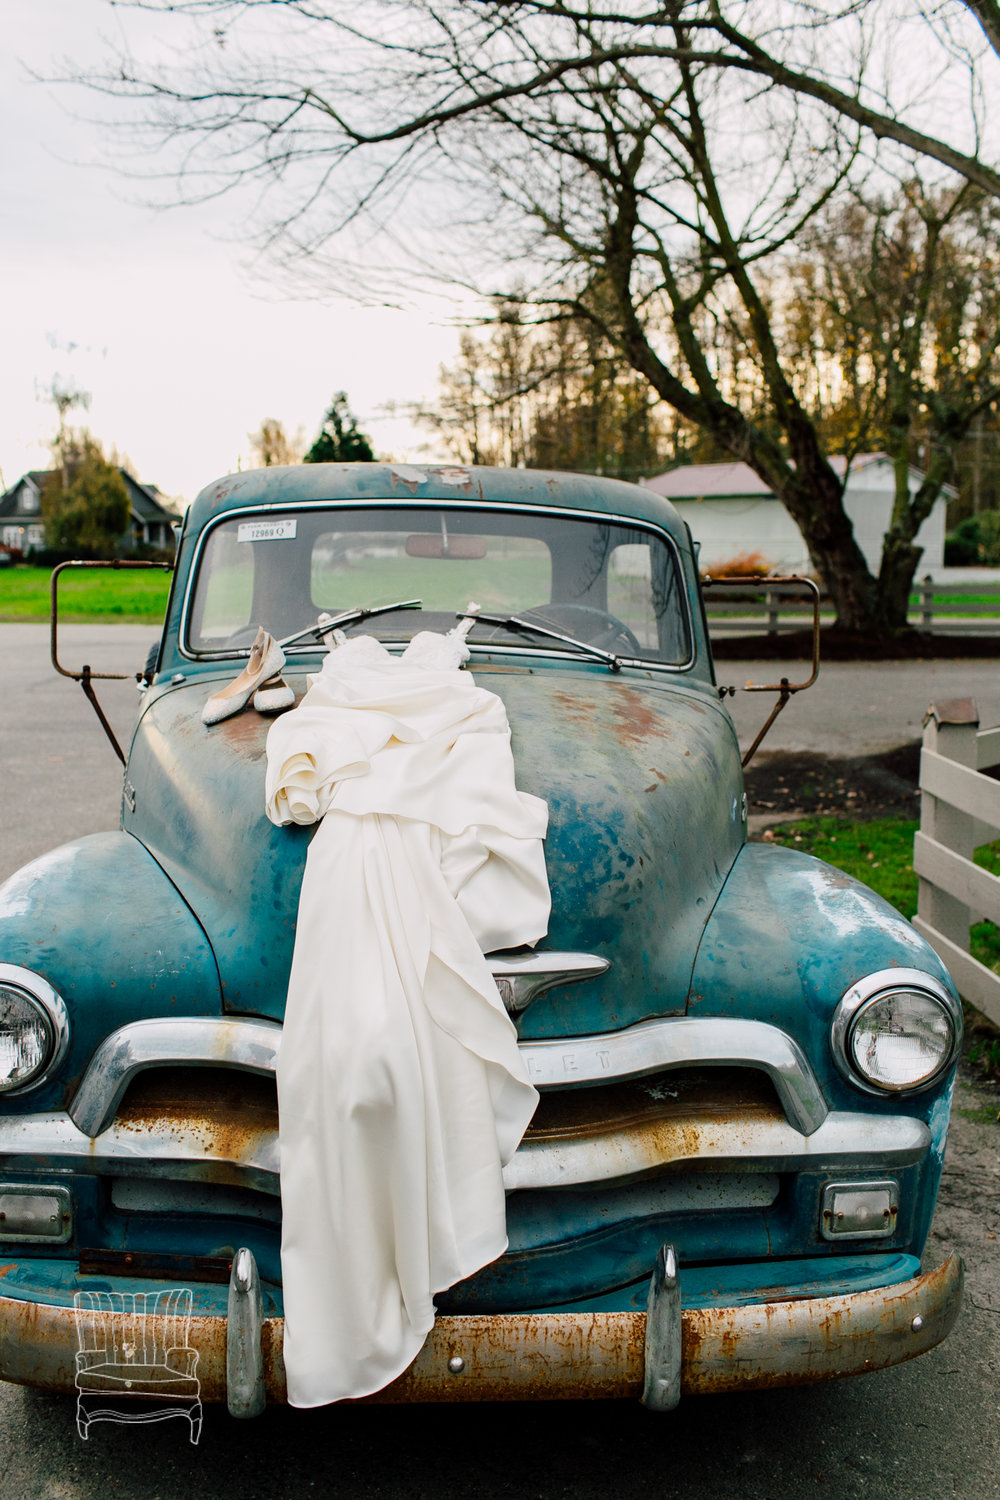 maplehurst-farm-wedding-skagit-valley-katheryn-moran-photography-2.jpg